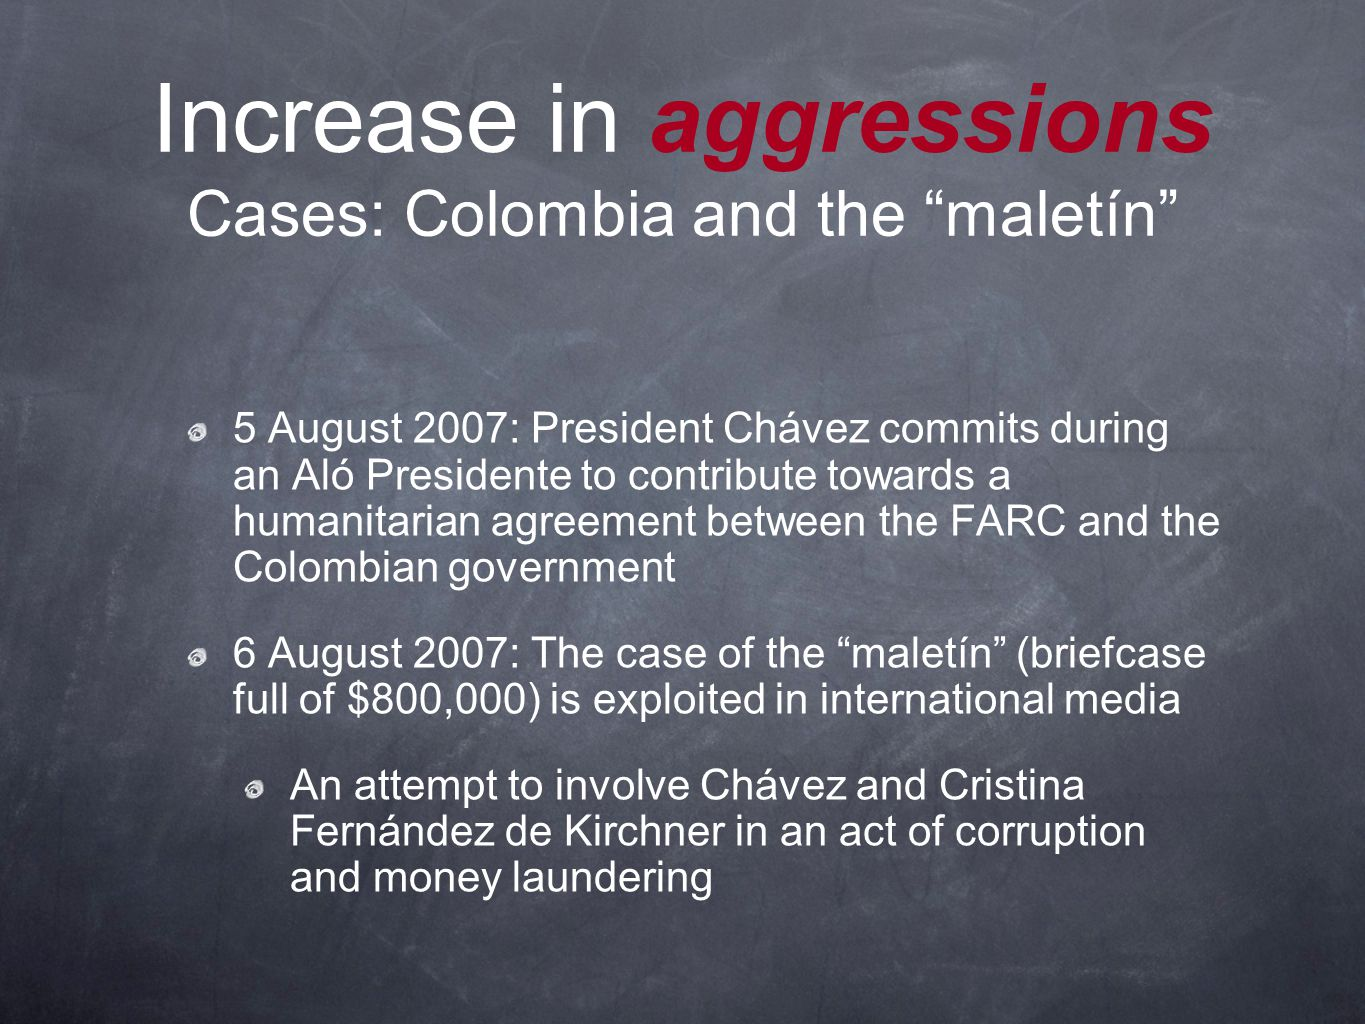 Increase in aggressions Cases: Colombia and the maletín 5 August 2007: President Chávez commits during an Aló Presidente to contribute towards a humanitarian agreement between the FARC and the Colombian government 6 August 2007: The case of the maletín (briefcase full of $800,000) is exploited in international media An attempt to involve Chávez and Cristina Fernández de Kirchner in an act of corruption and money laundering